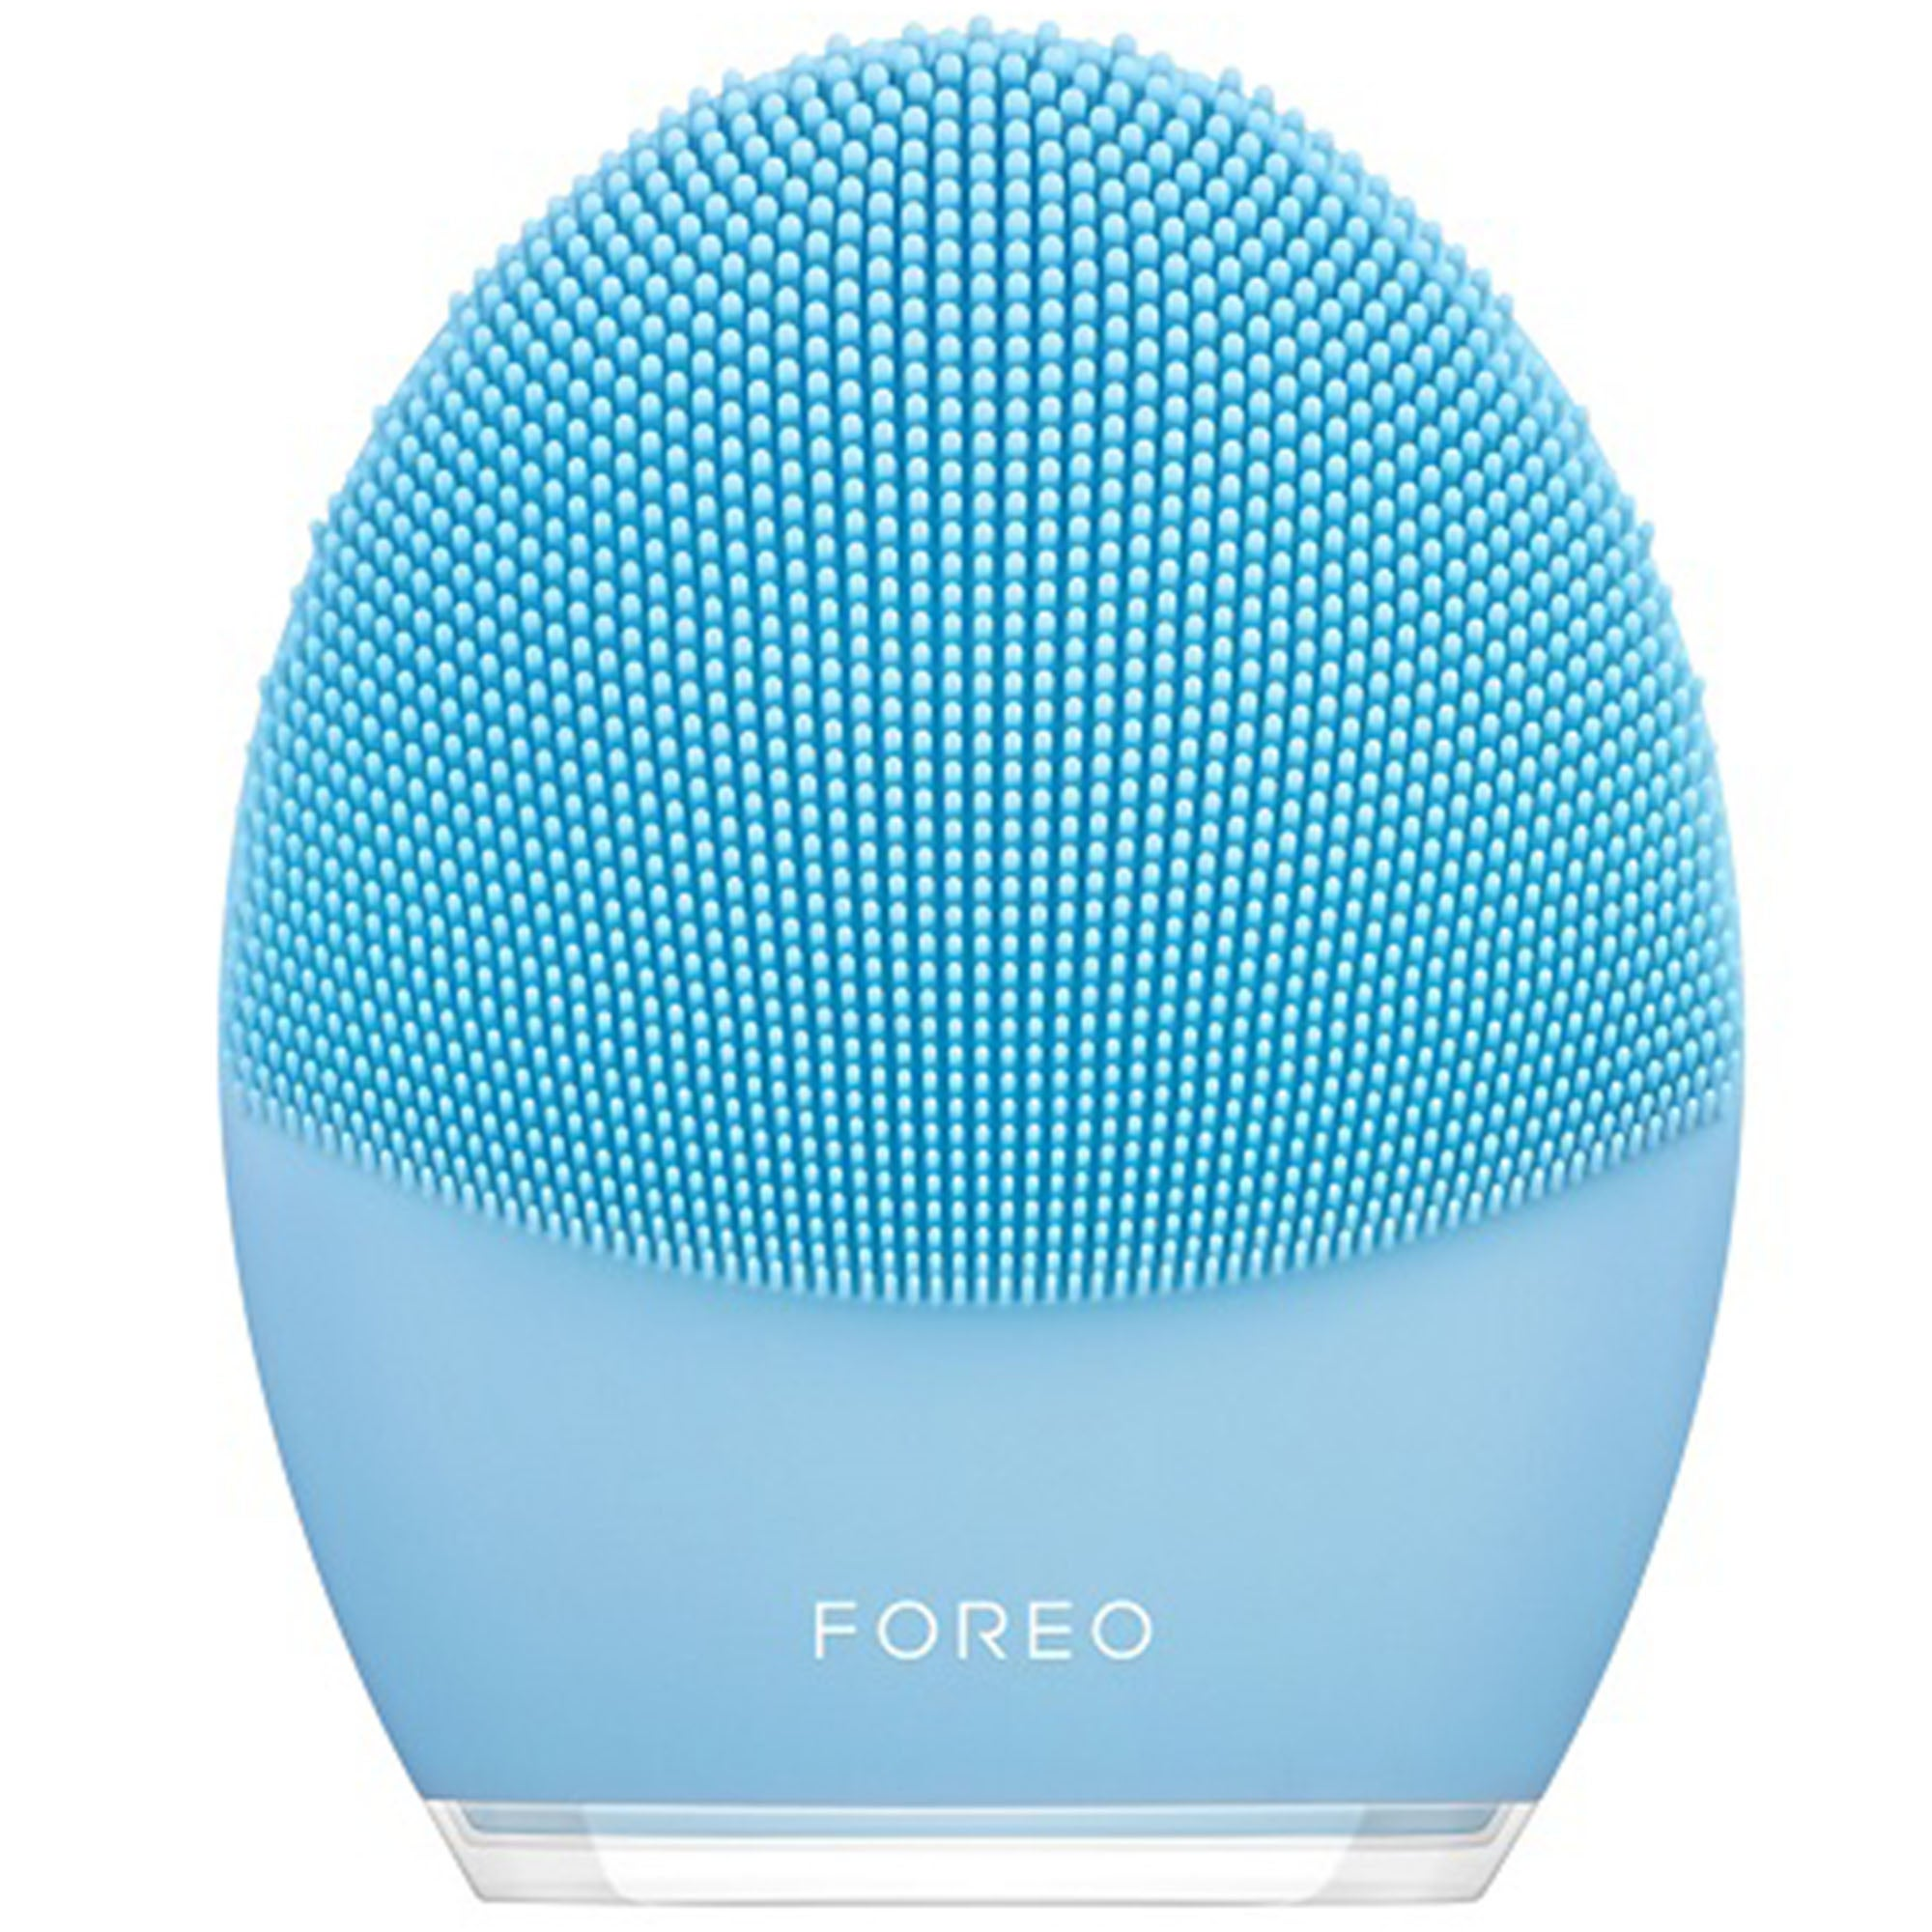 LUNA 3 for Combination Skin,  Foreo Ansiktsborstar